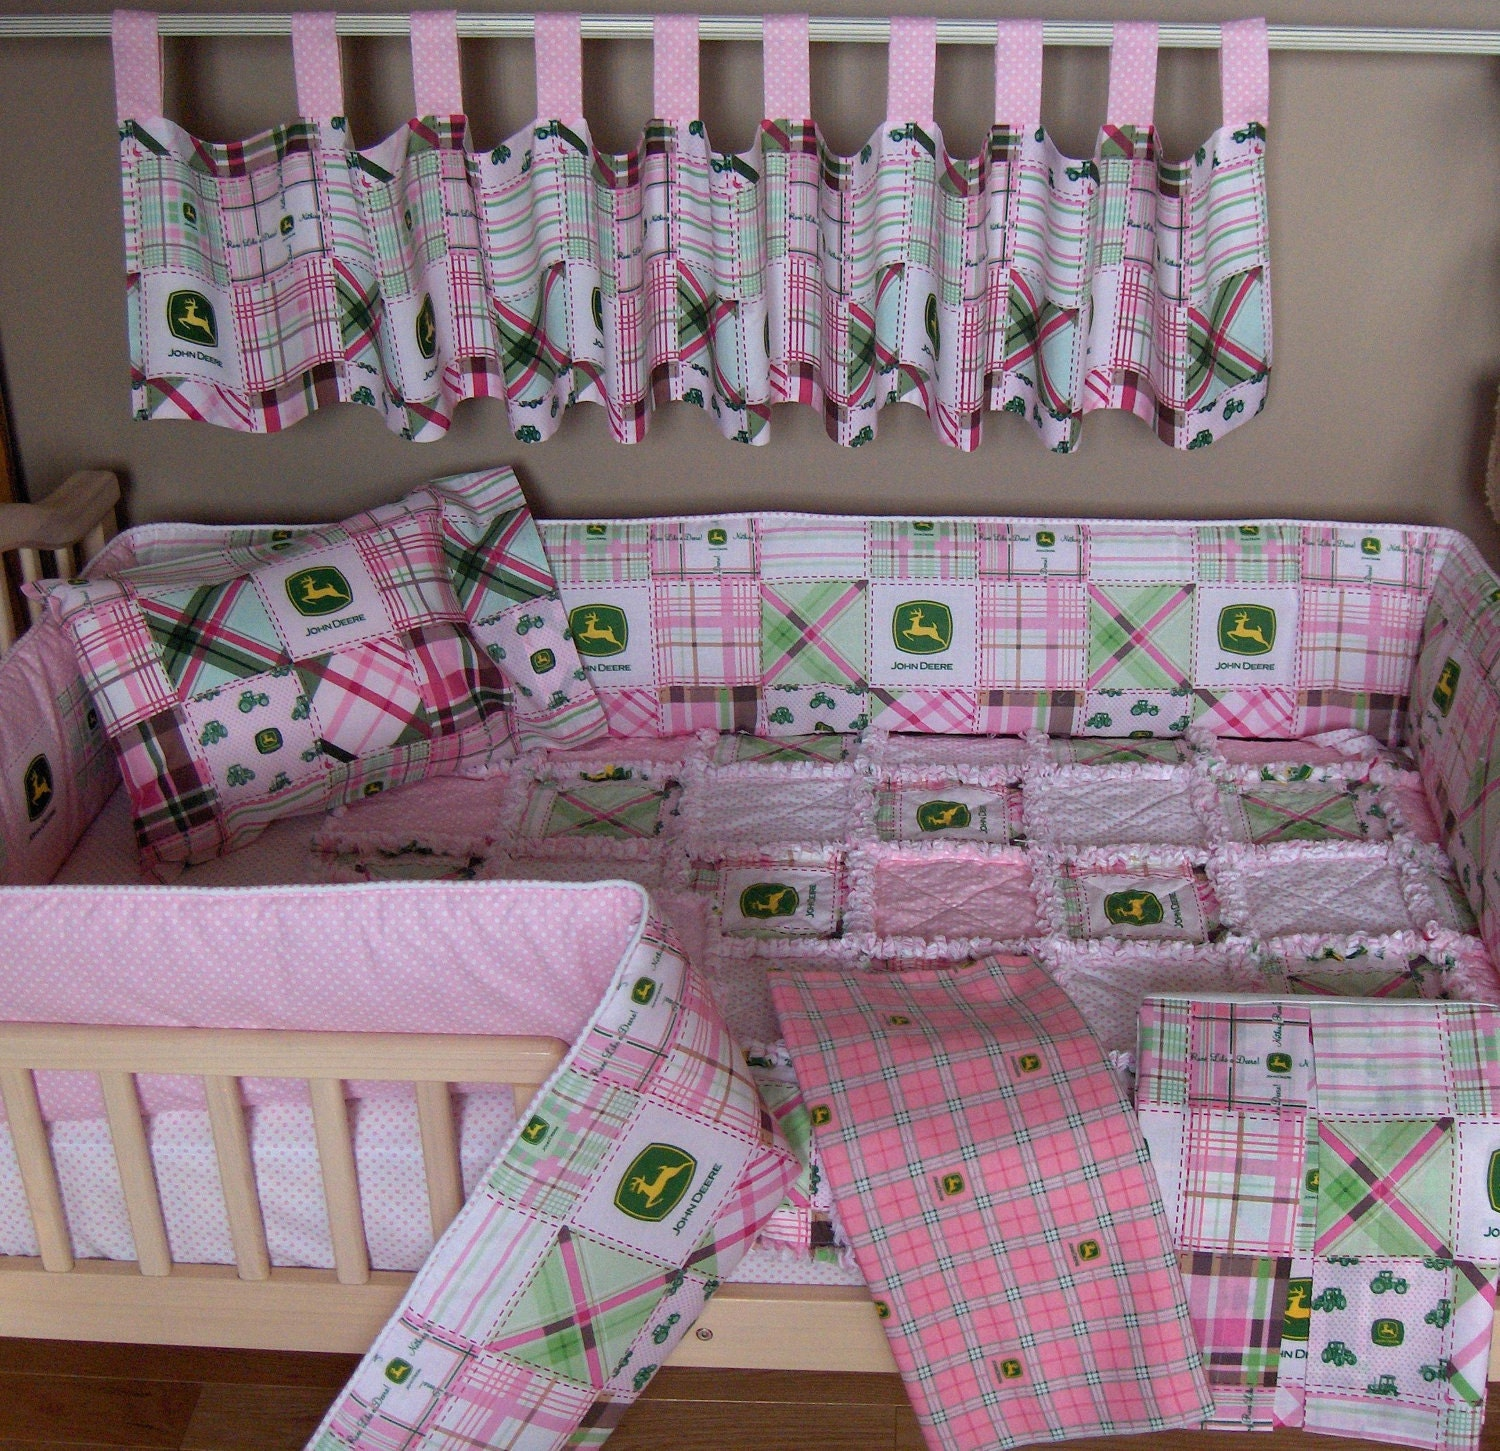 Baby bed extension uk - Stunning Baby Pink John Deere Fabric Crib Bedding Set Rag Quilt Valance With Baby Crib Bedding Sets Uk